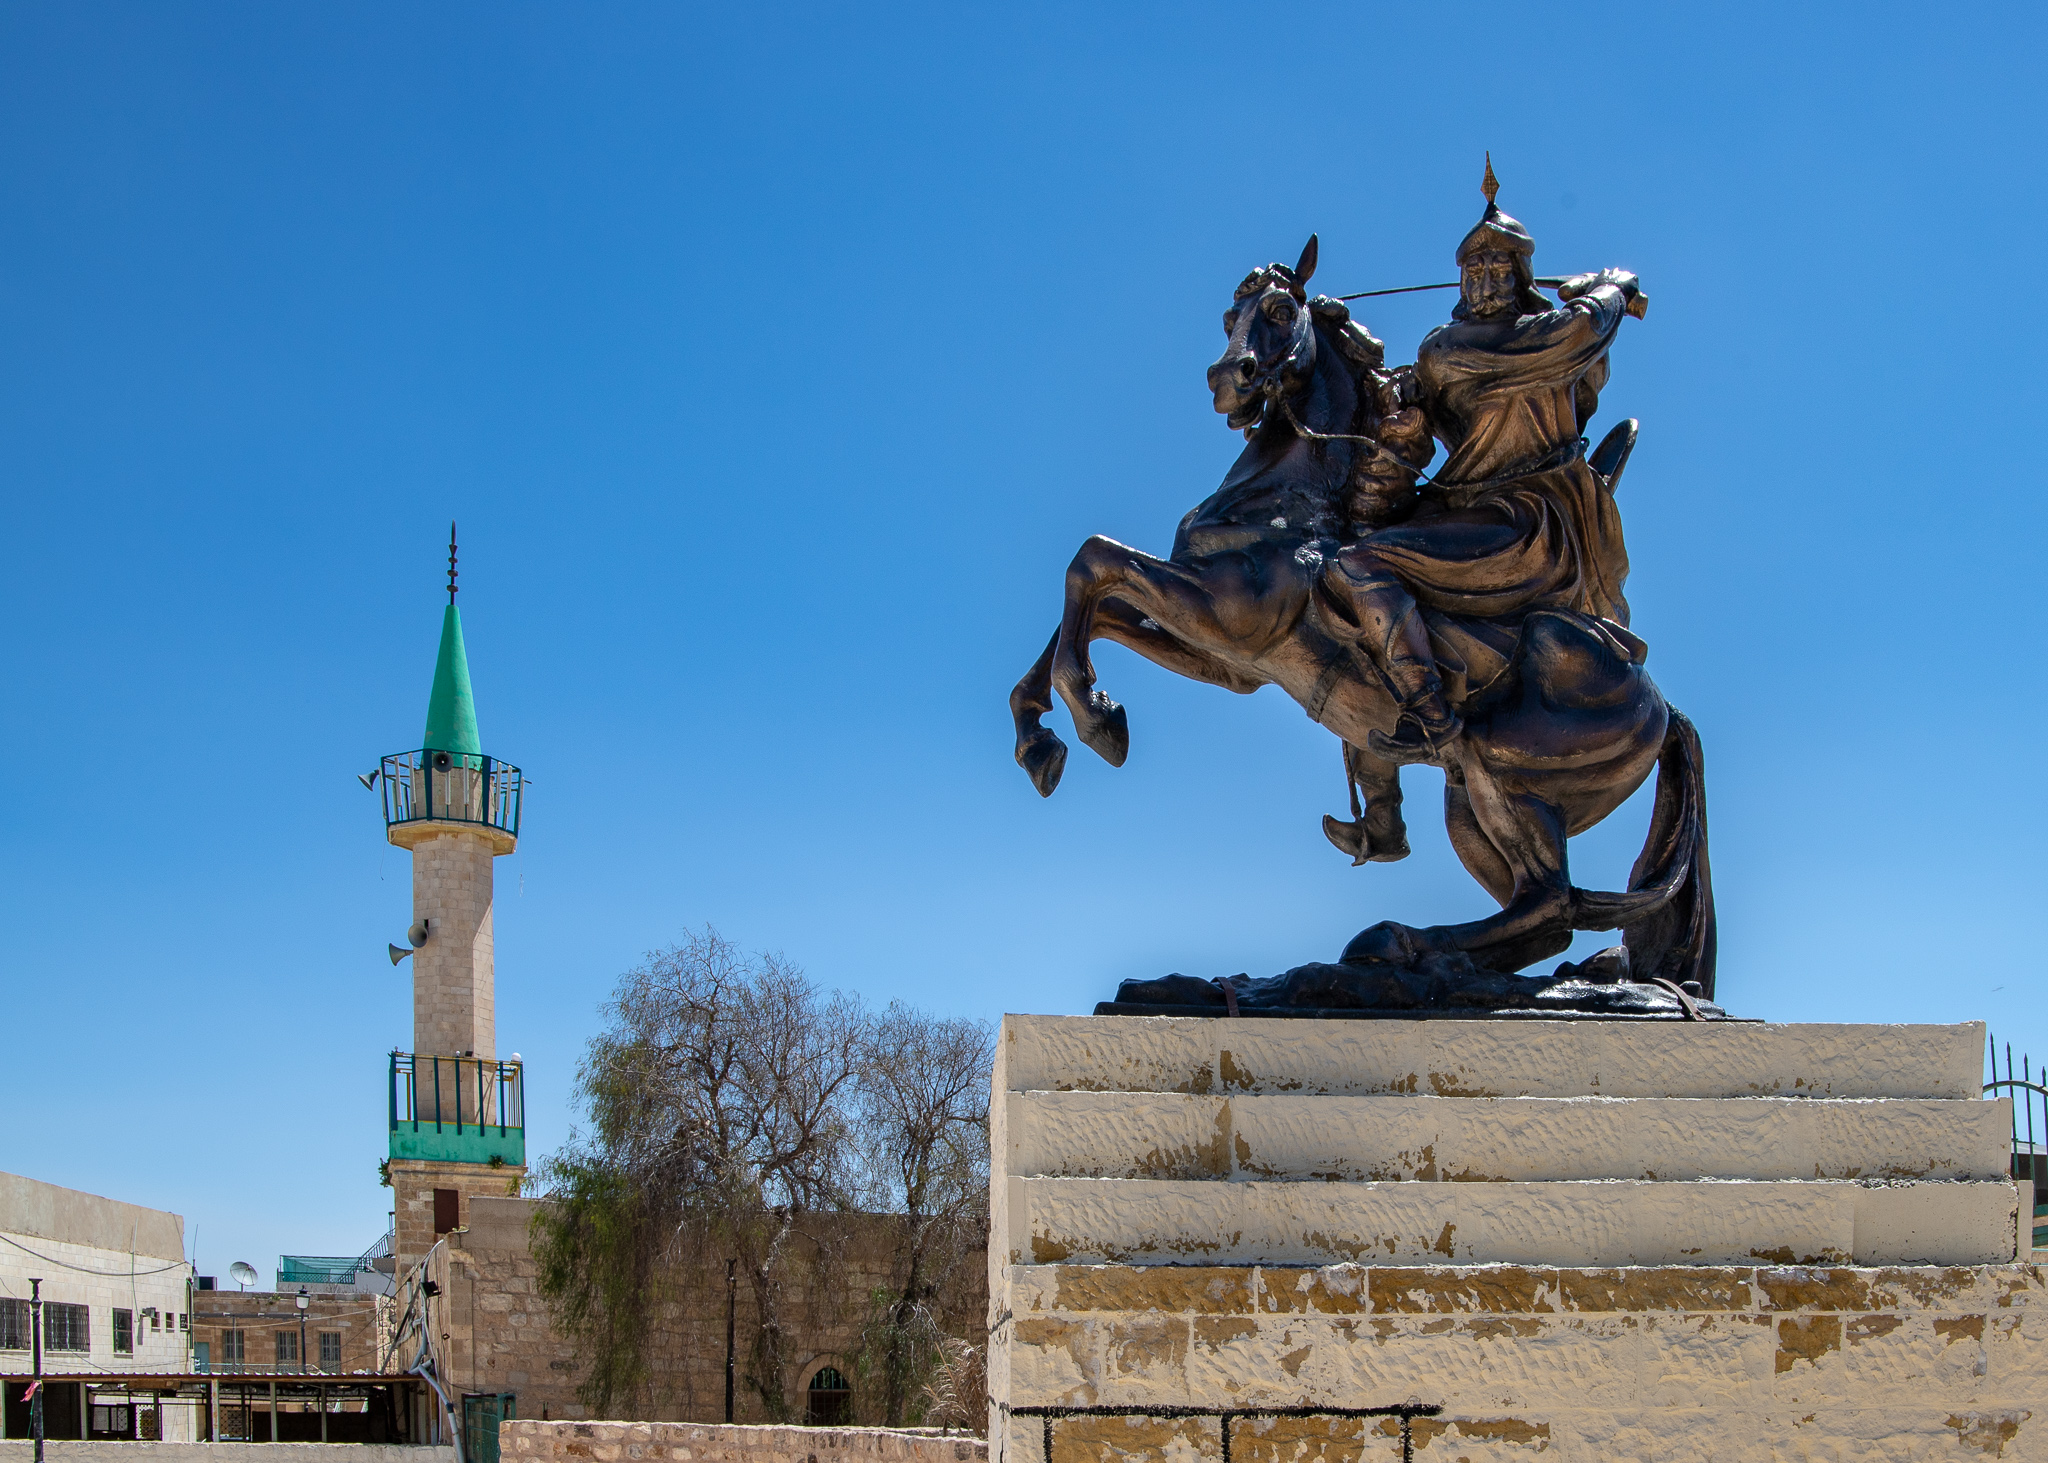 Statue of the famous Saladin